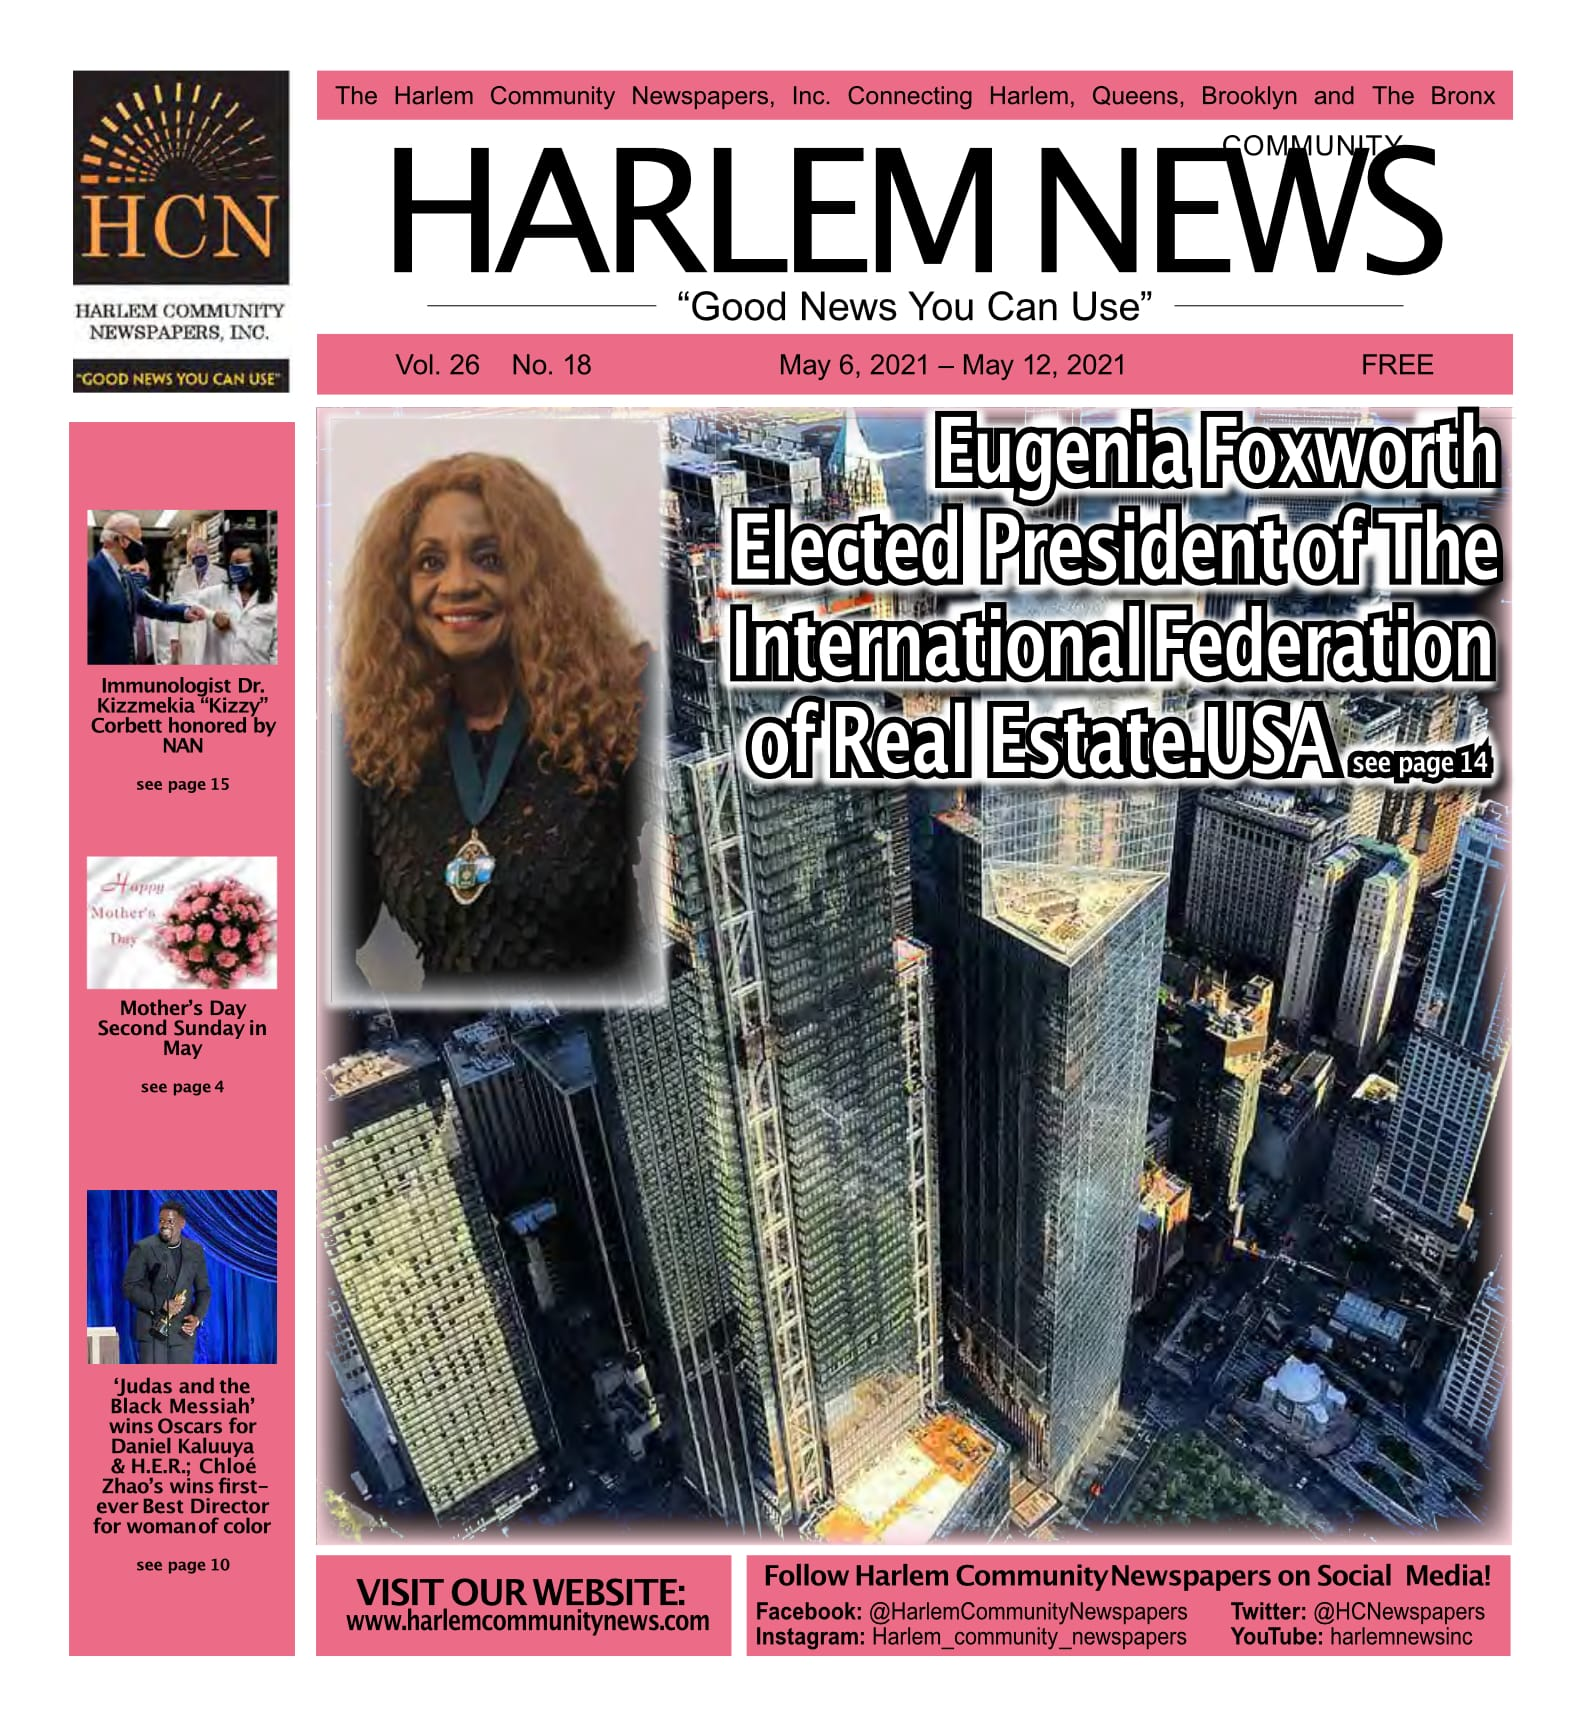 Harlem News Front Page